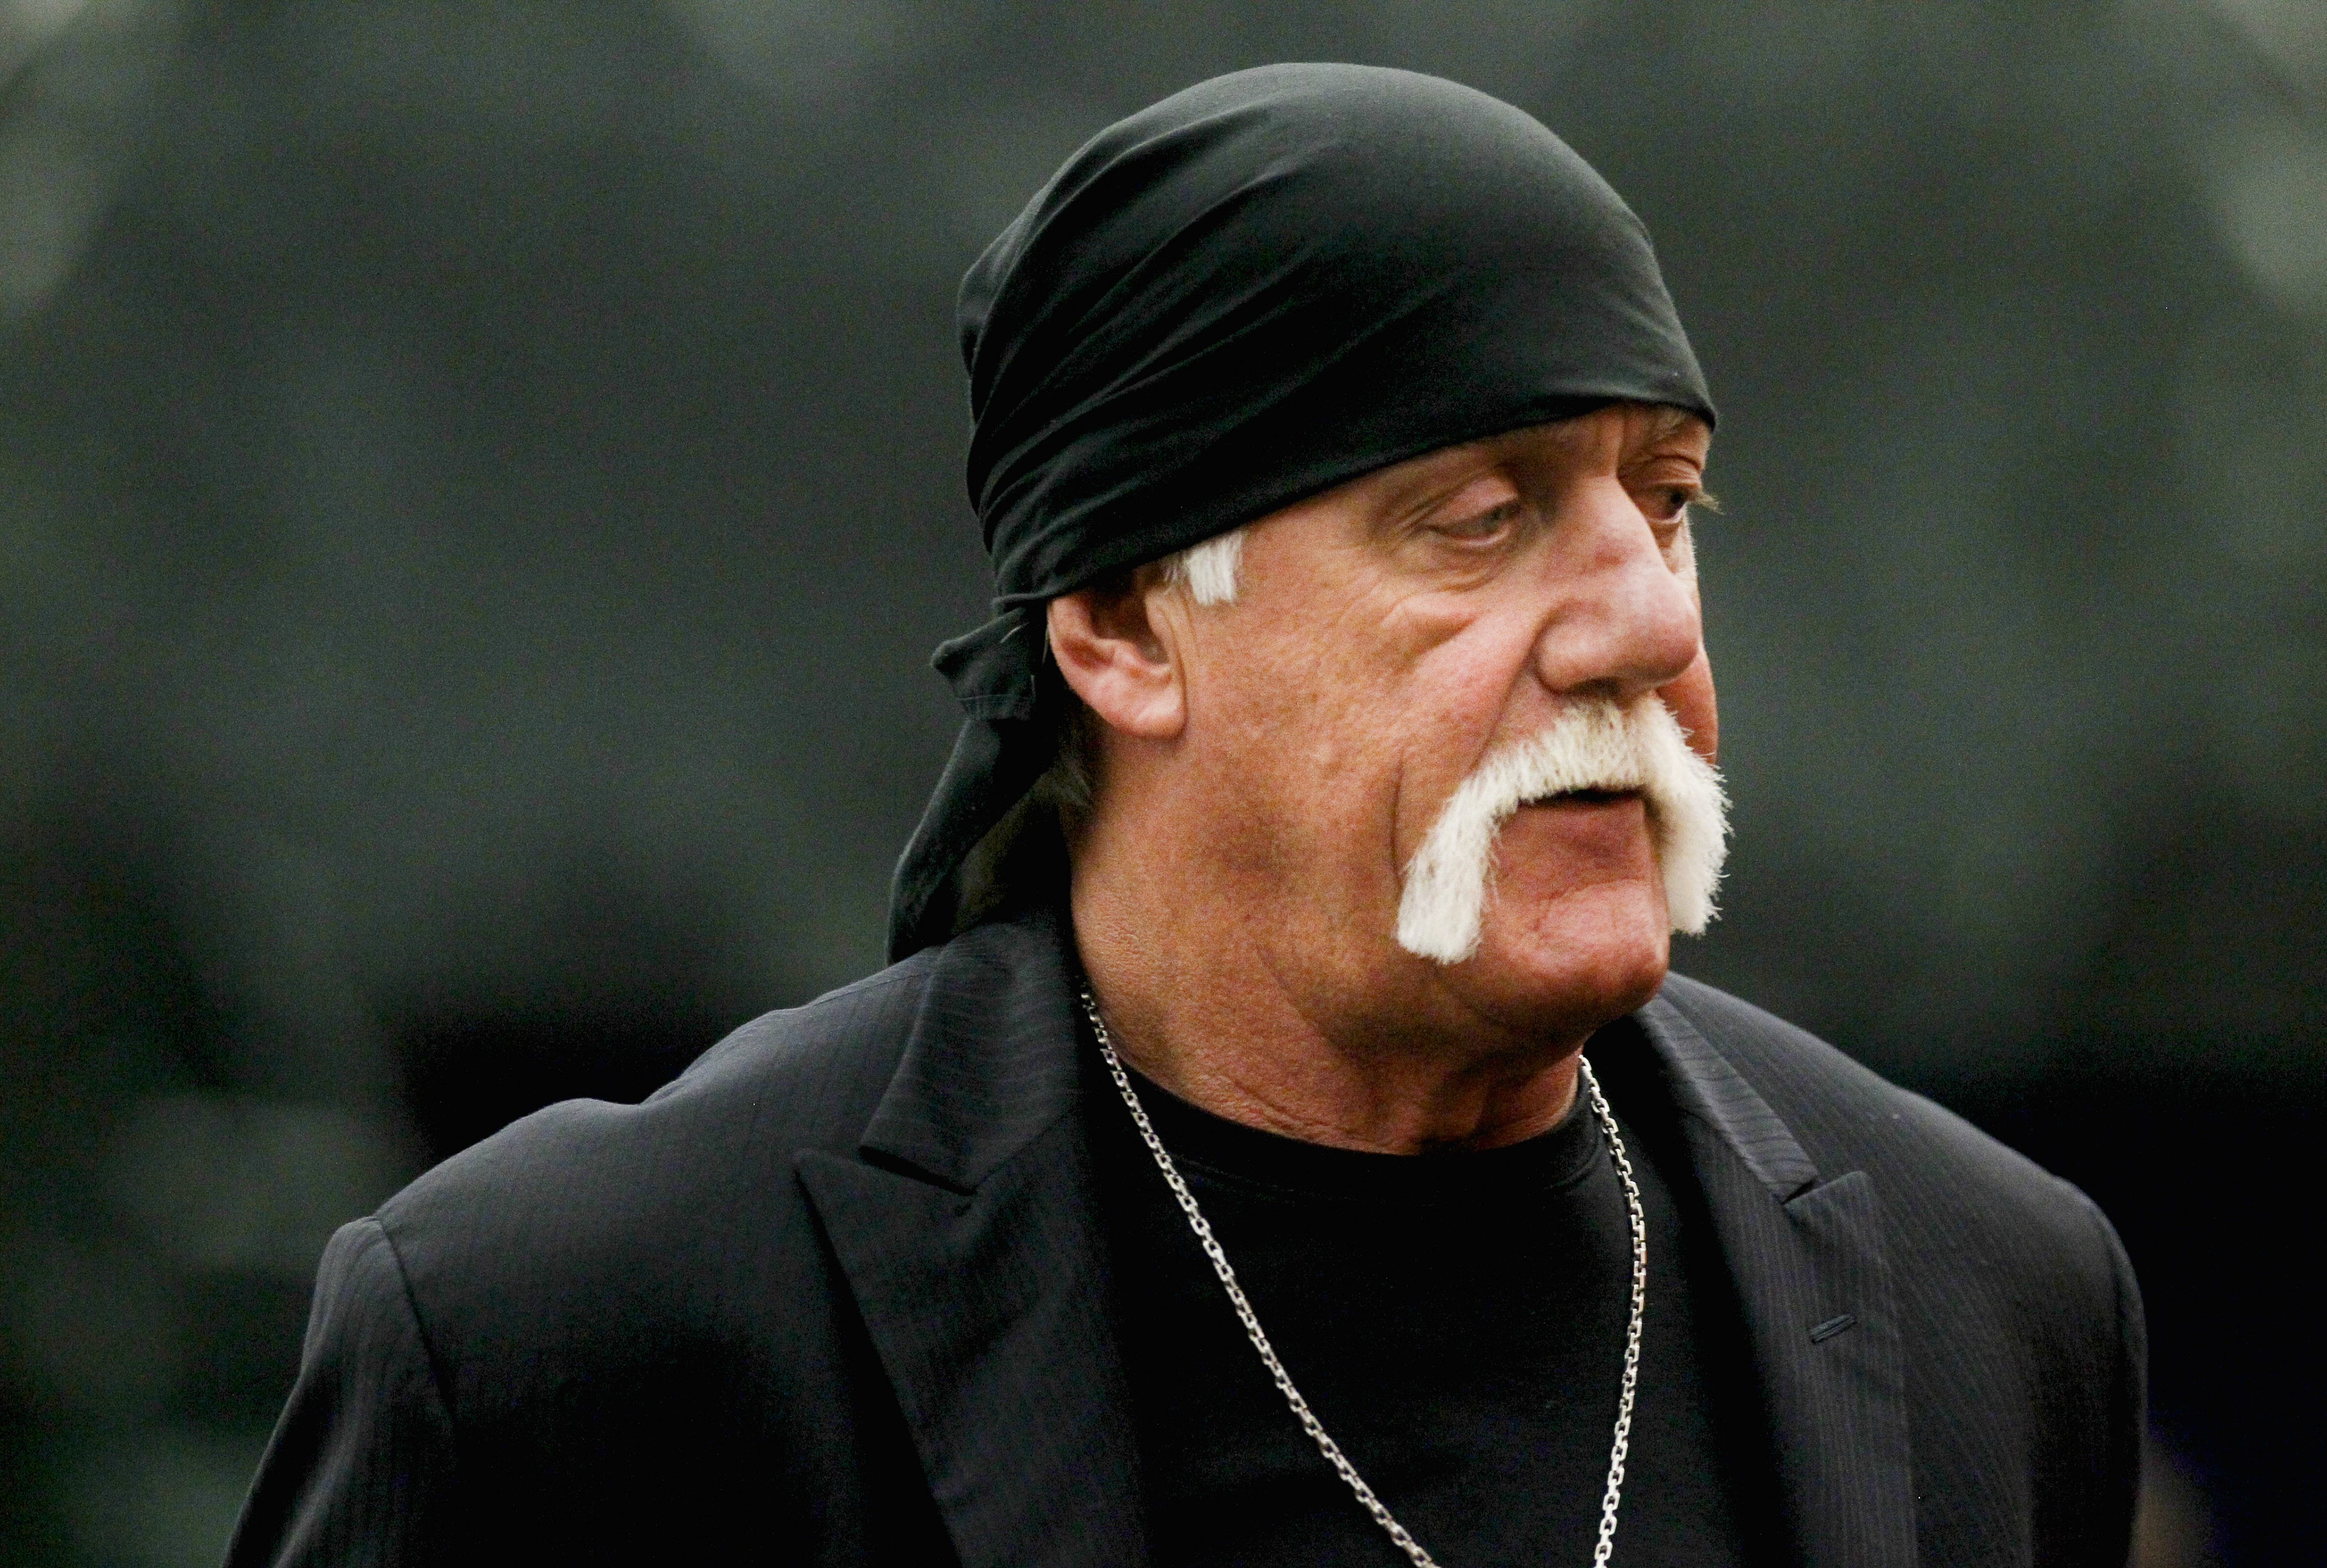 Terry Bollea, aka Hulk Hogan, arrives for his trial against Gawker Media, in St Petersburg, Florida